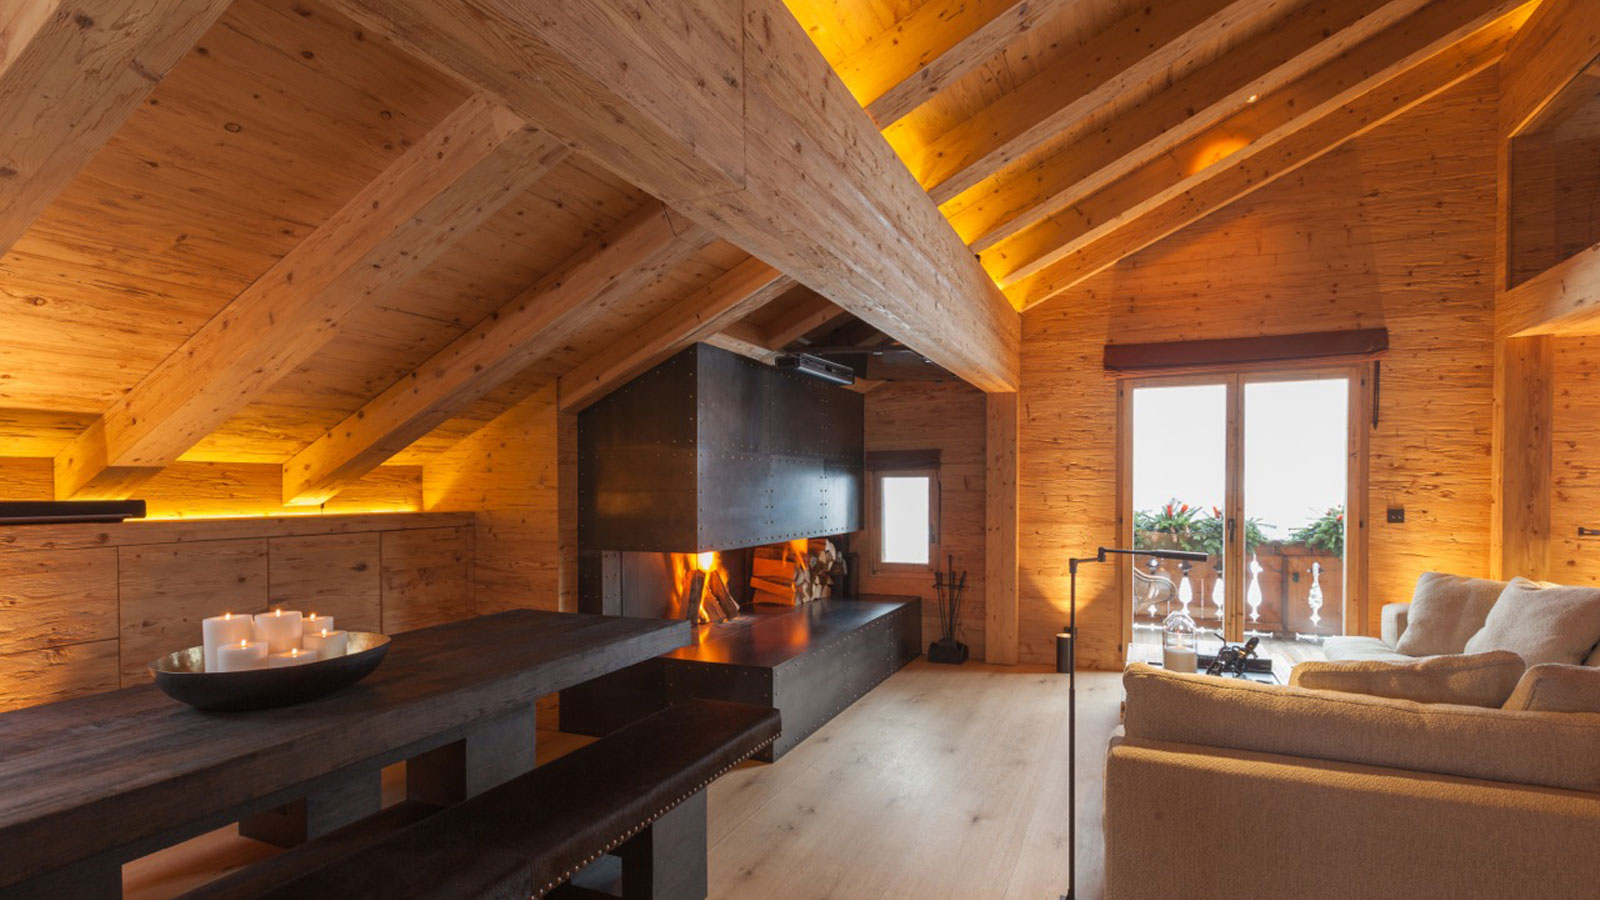 Design furniture and interior design of chalet by RH-Design